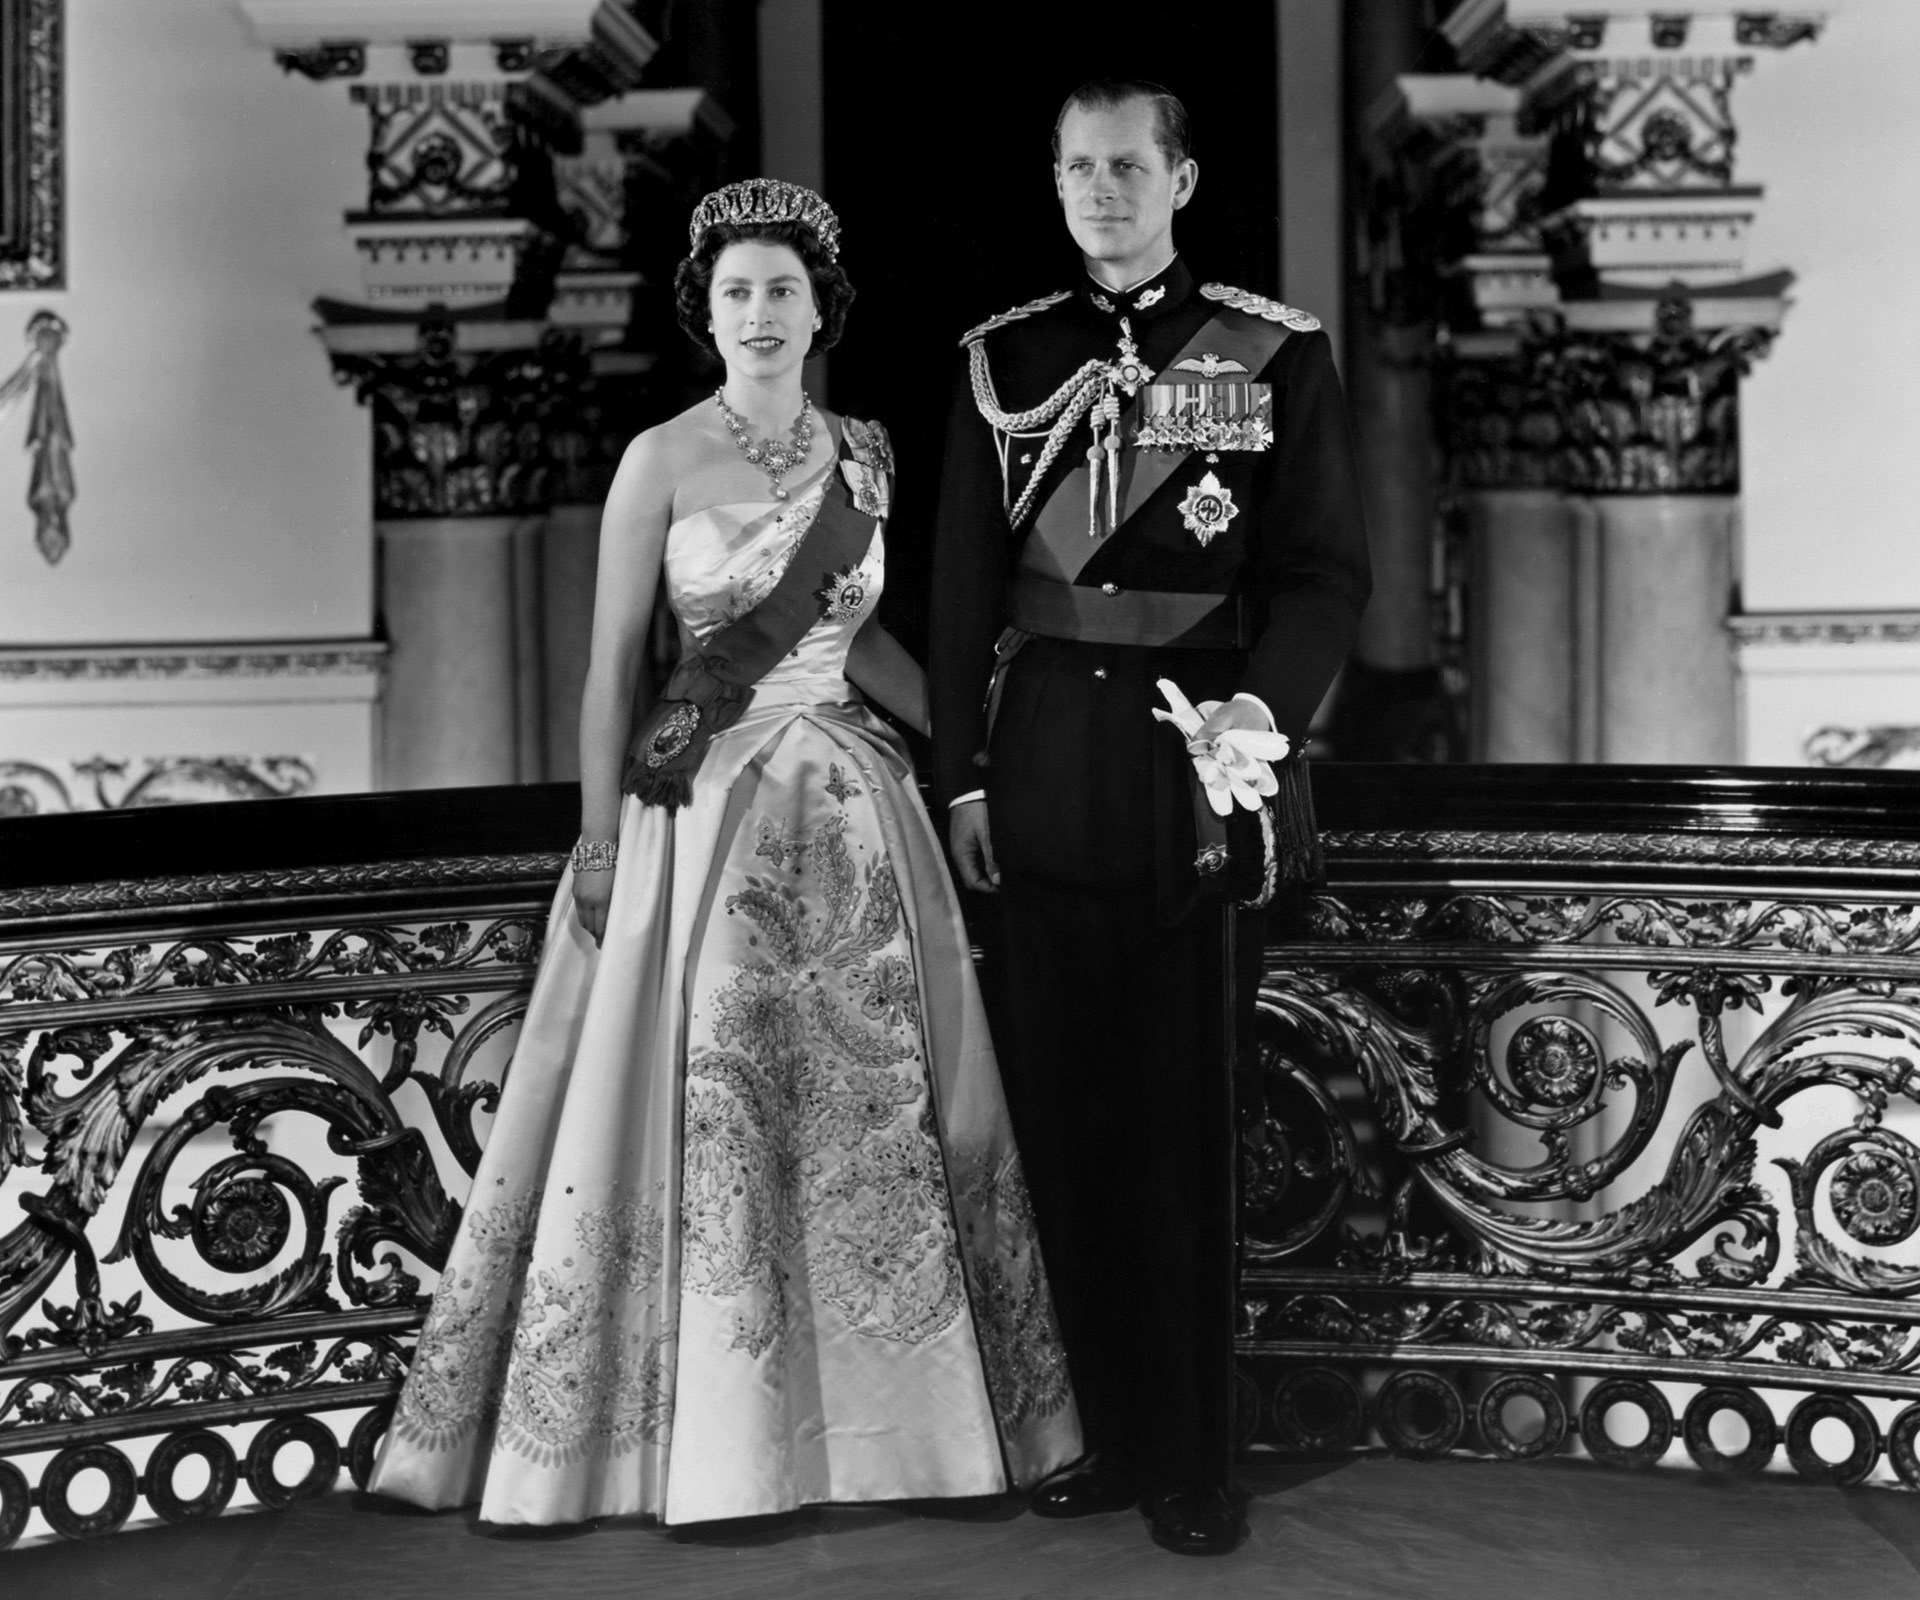 "Queen Elizabeth may be the longest-serving monarch, but we also admire the love she has for her husband, Prince Philip, 94. The pair tied the knot in breath-taking ceremony back in November 1947. When Philip first met Elizabeth he recalled: ""You were so shy. I couldn't get a word out of you."""